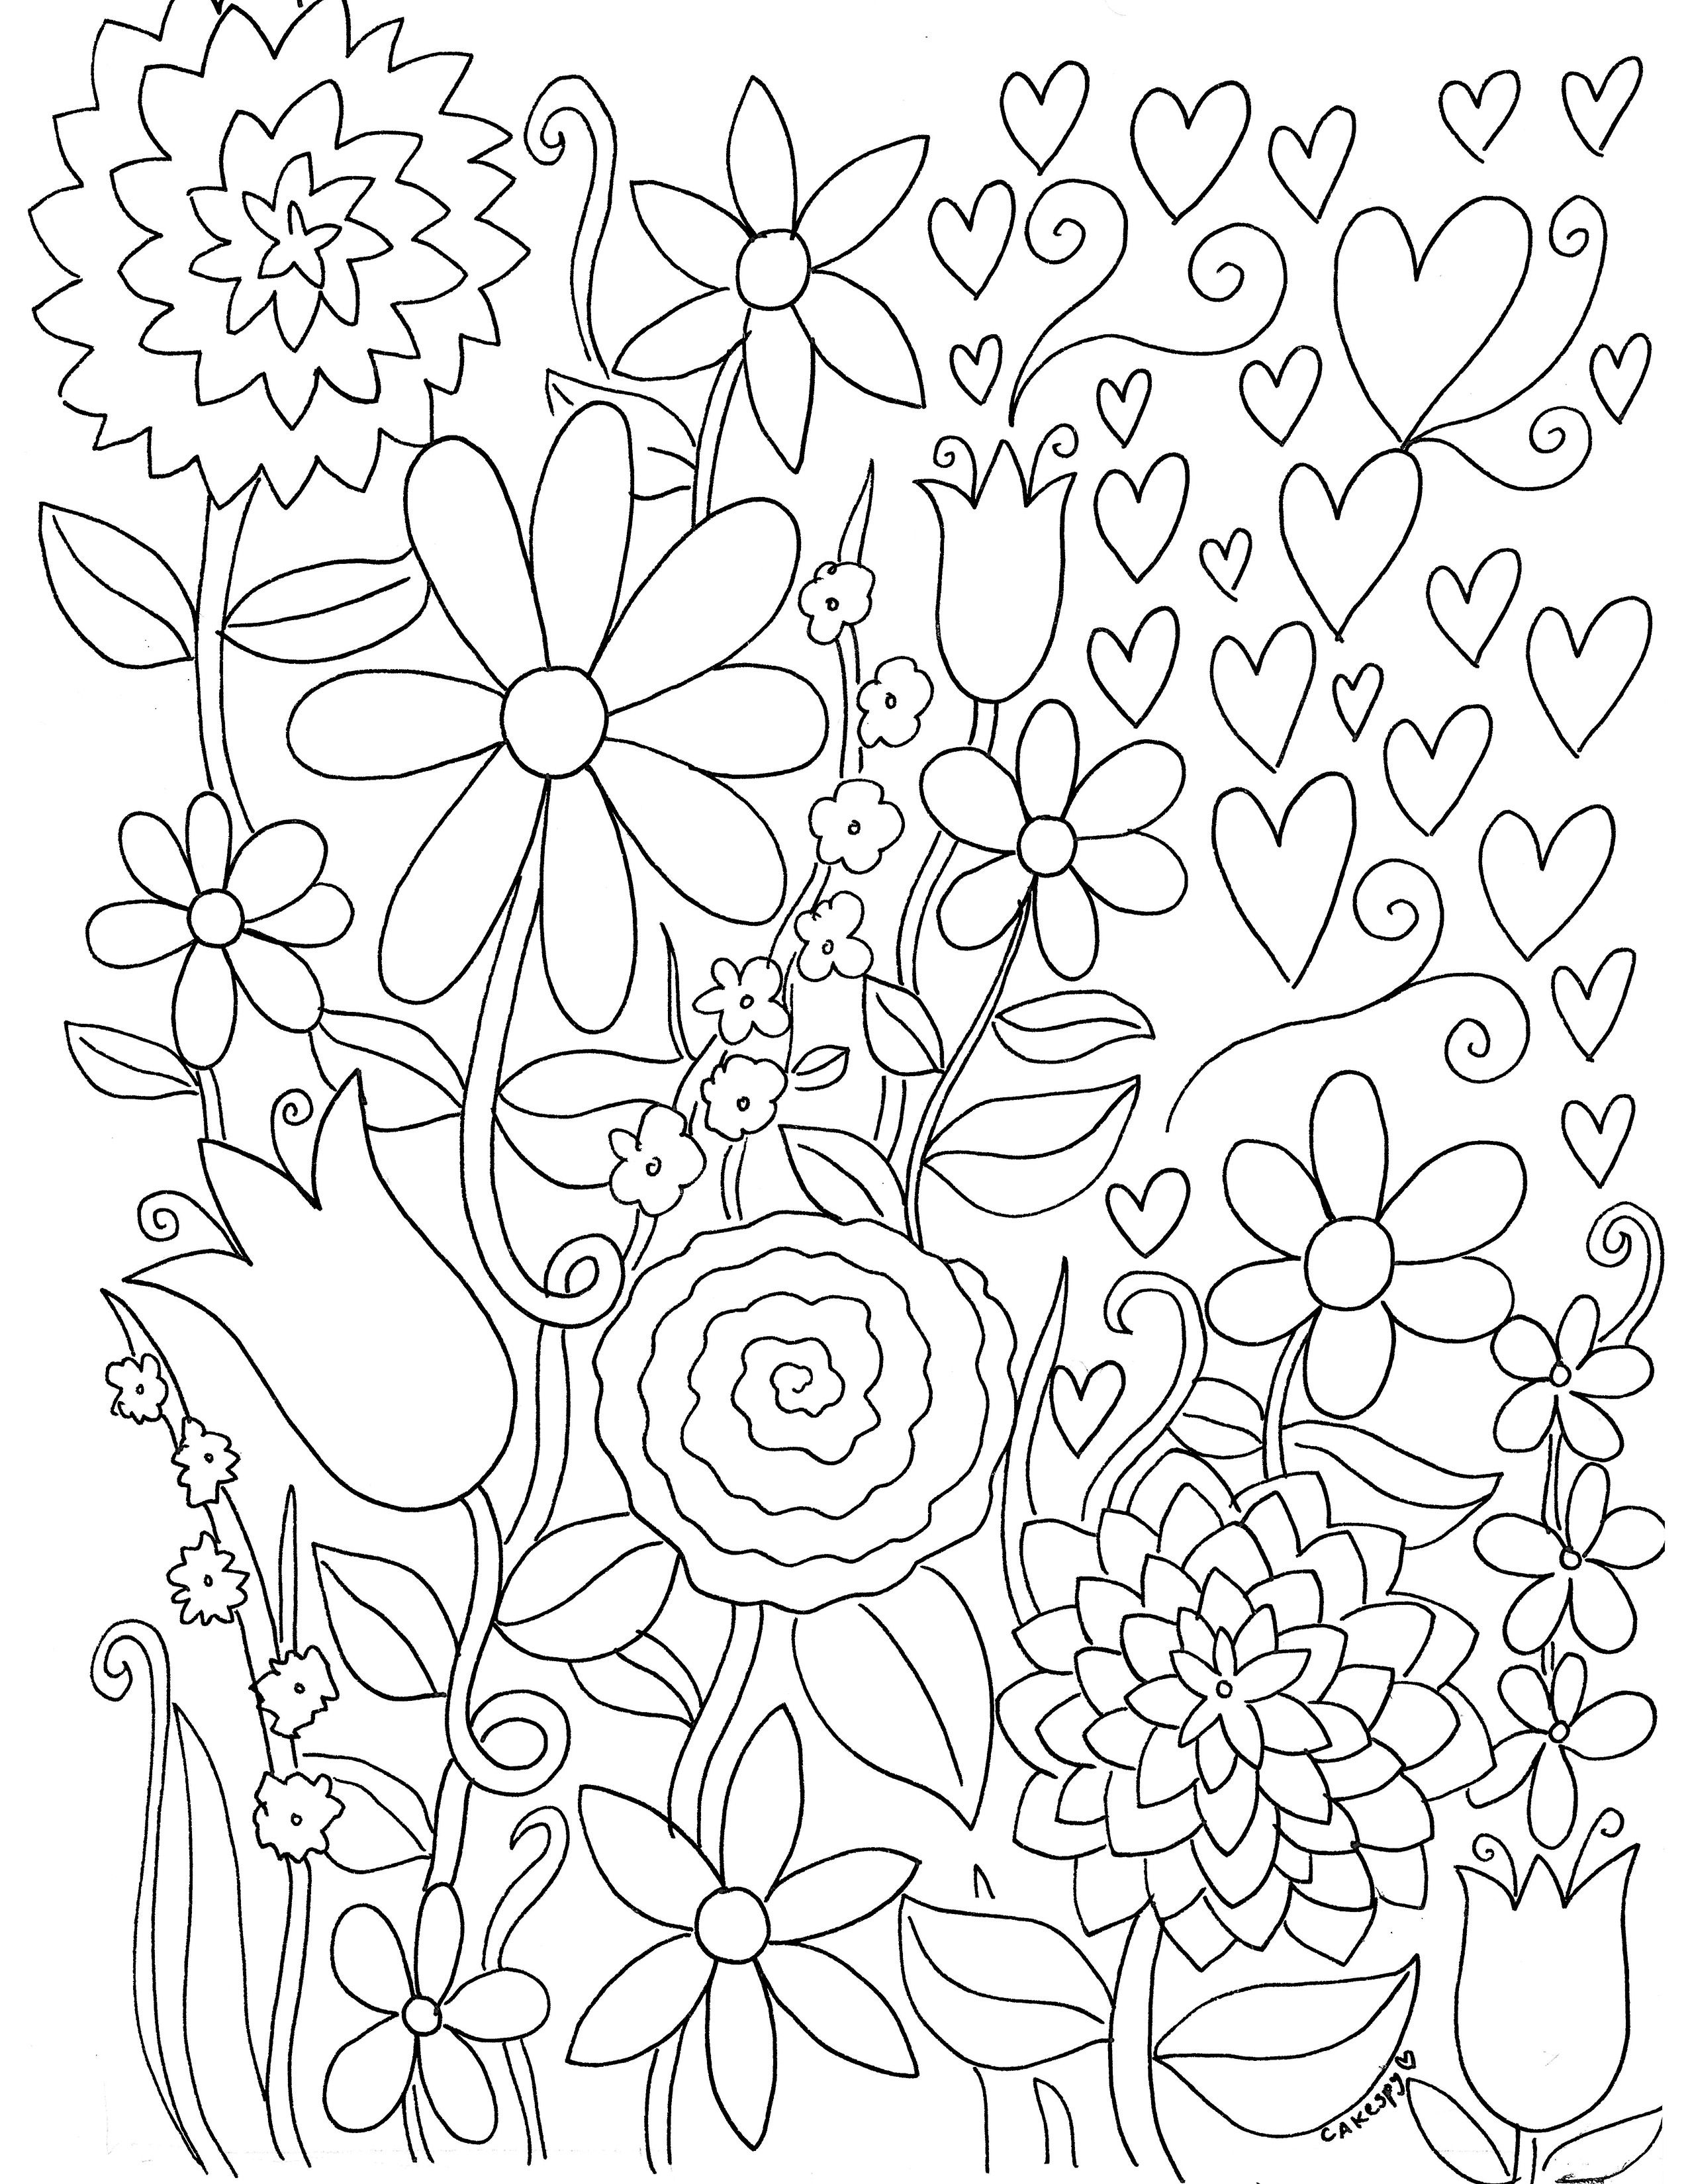 color by number pages for adults 162 best images about color by number and dot to dot on by color number pages for adults